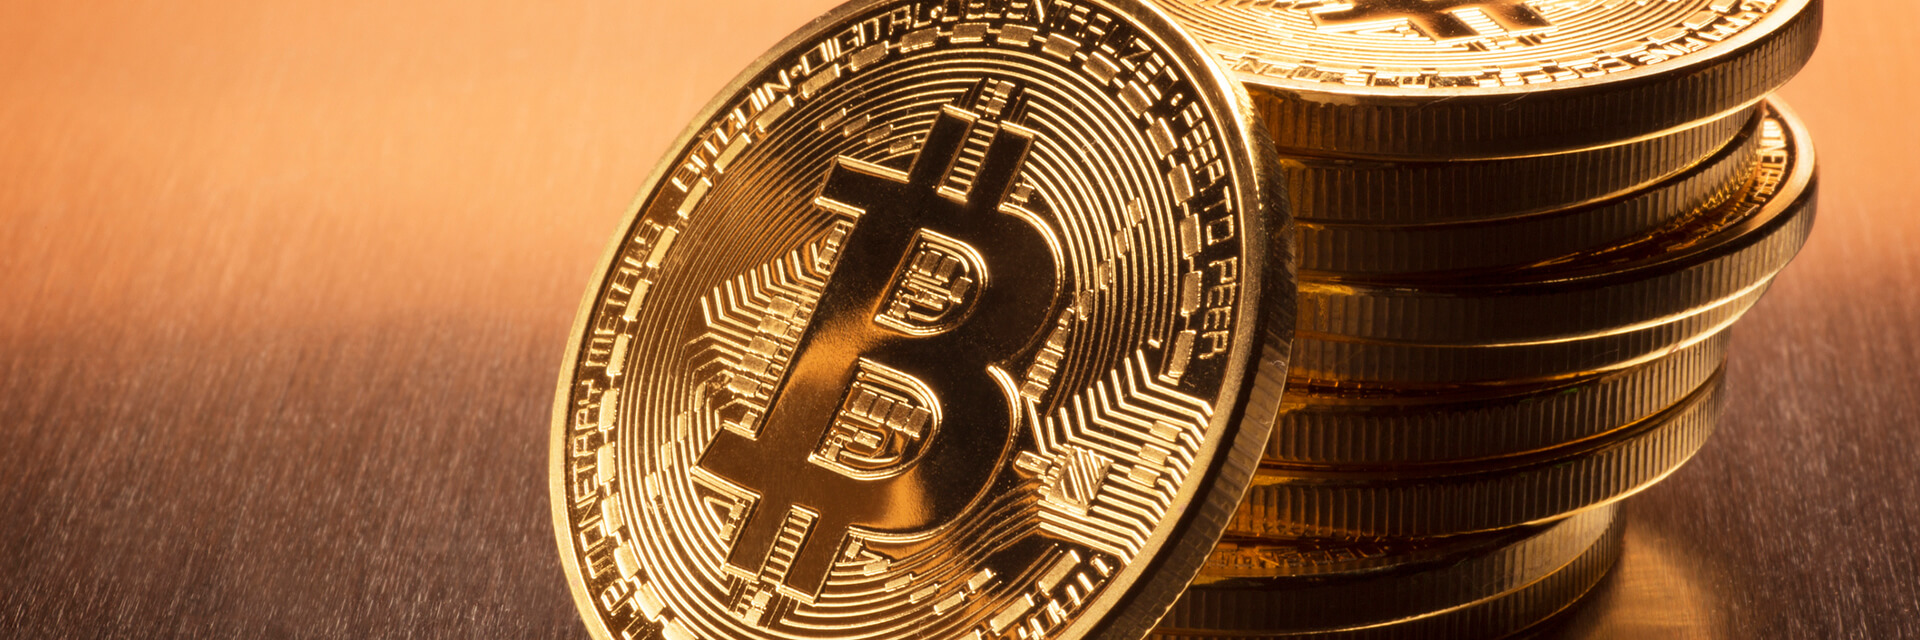 Crypto Currency Blog Post Image